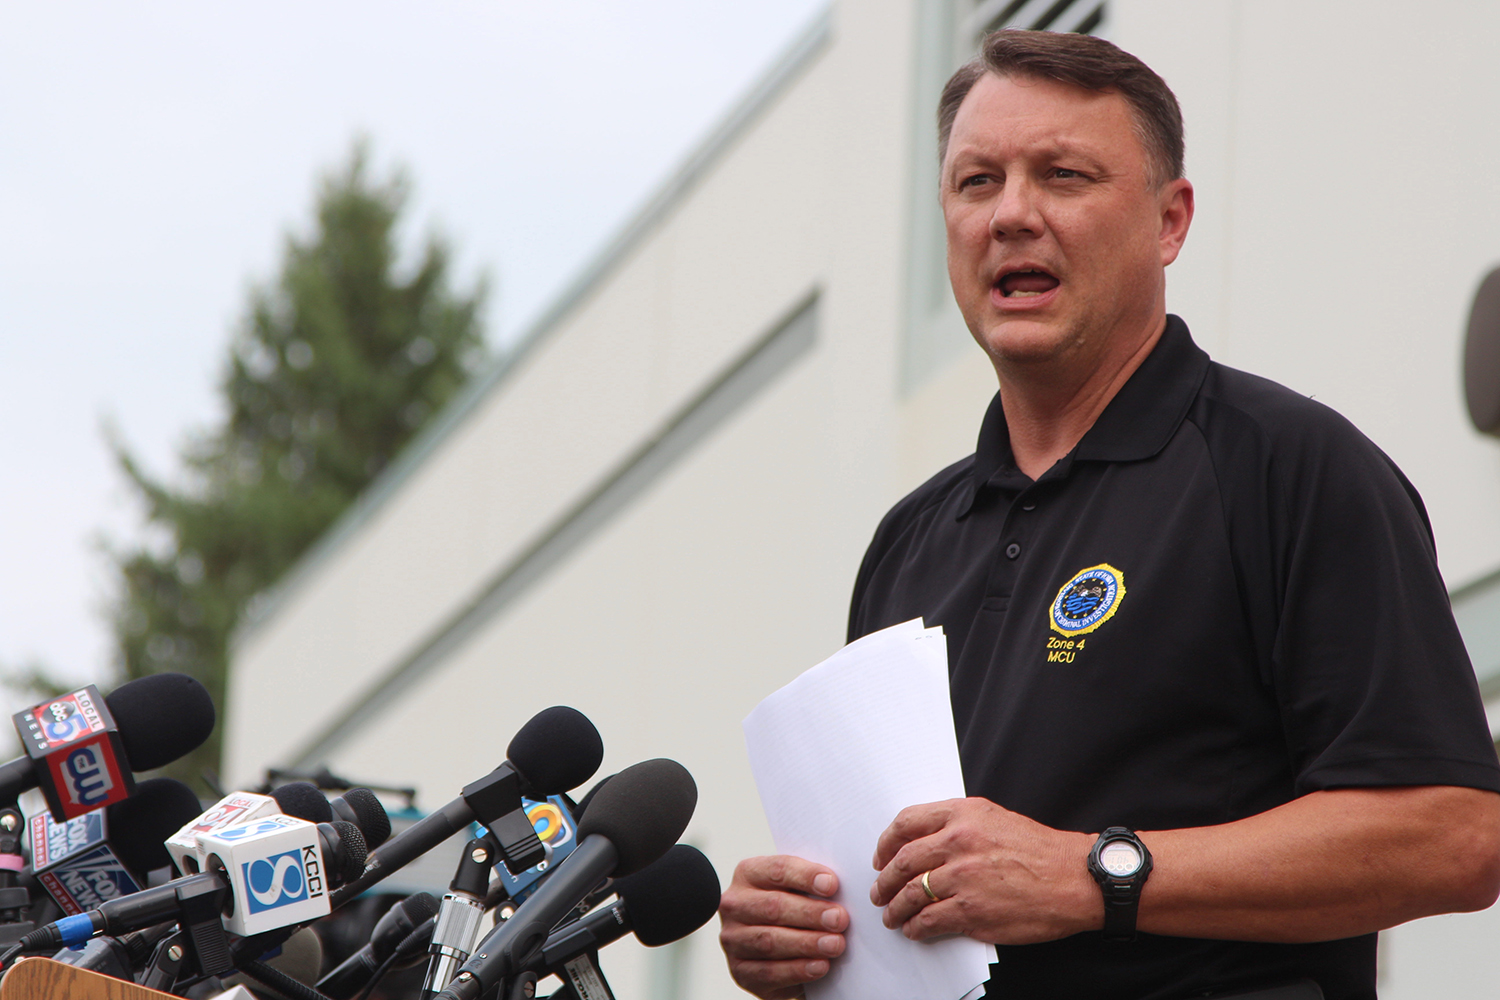 Department of Criminal investigation Special Agent in Charge Richard Rahn speaks at a press conference regarding the case of UI student Mollie Tibbetts' death in Montezuma, Iowa, on Aug. 21, 2018. Tibbetts' body was found in a cornfield outside of Brooklyn, Iowa, and a first-degree murder charge has been filed.